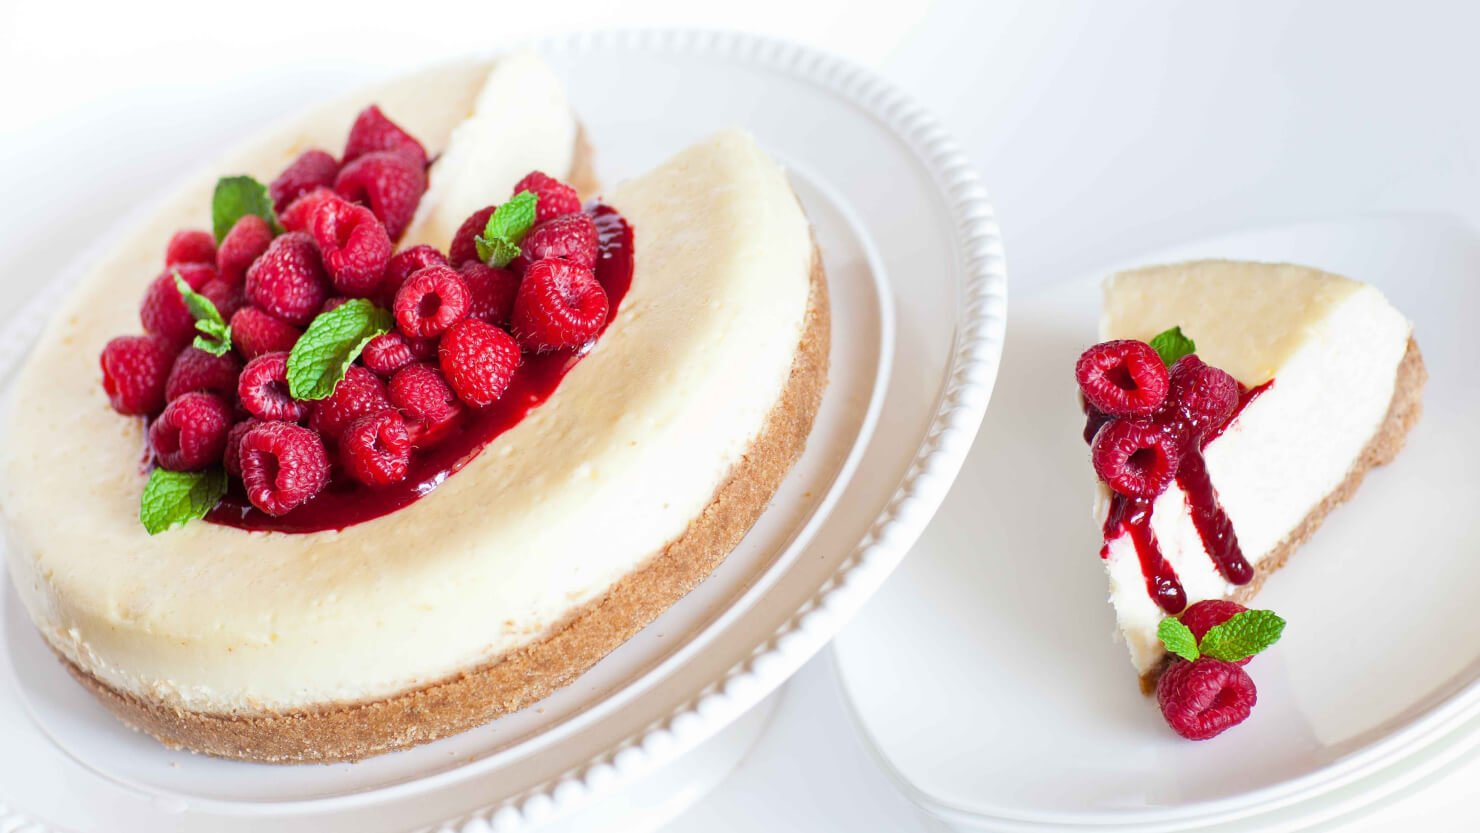 Classic Cheesecake with Raspberry Coulee - Tatyanas Everyday Food